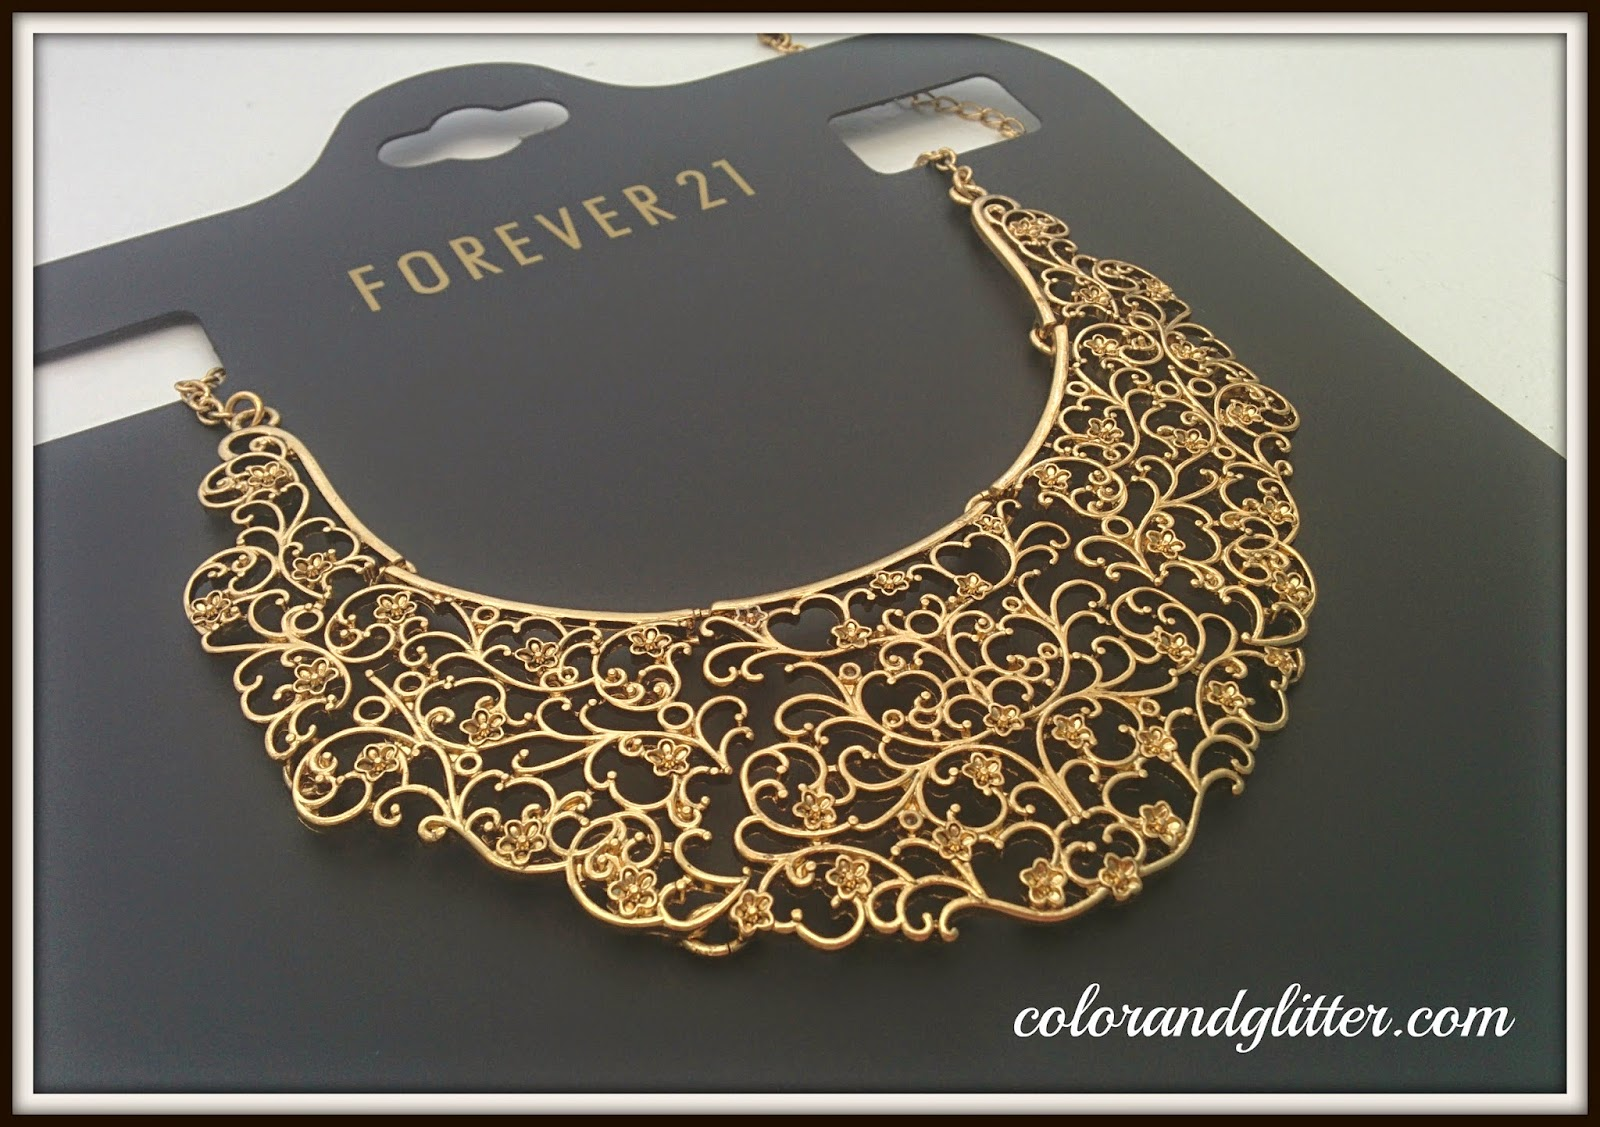 Fashion Haul: Forever21 Jewelry